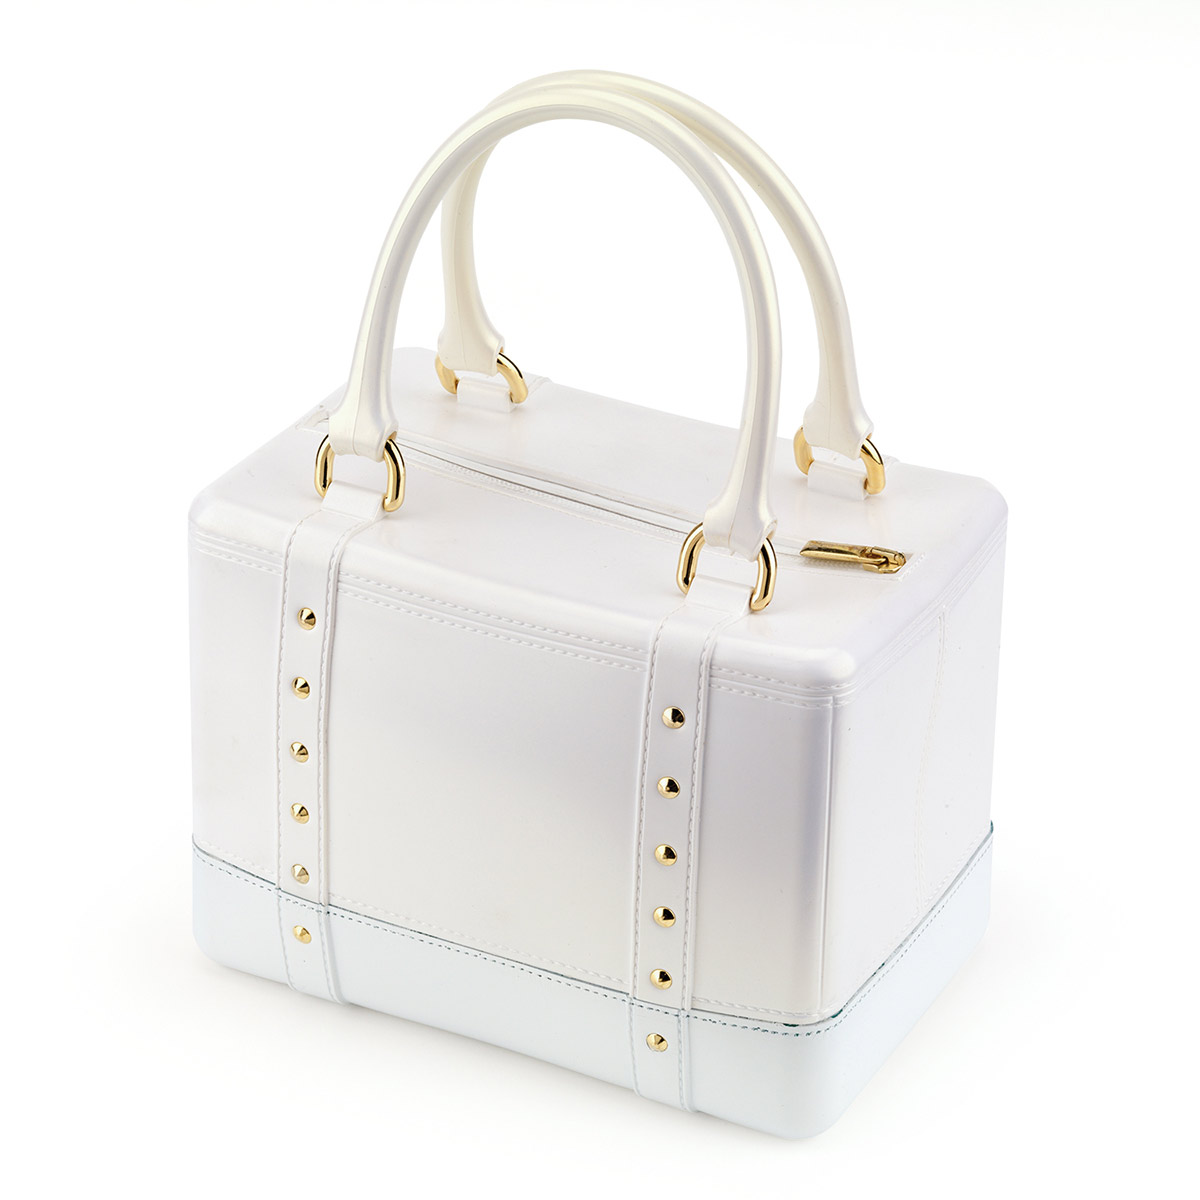 Pvc bag with gold colored studs